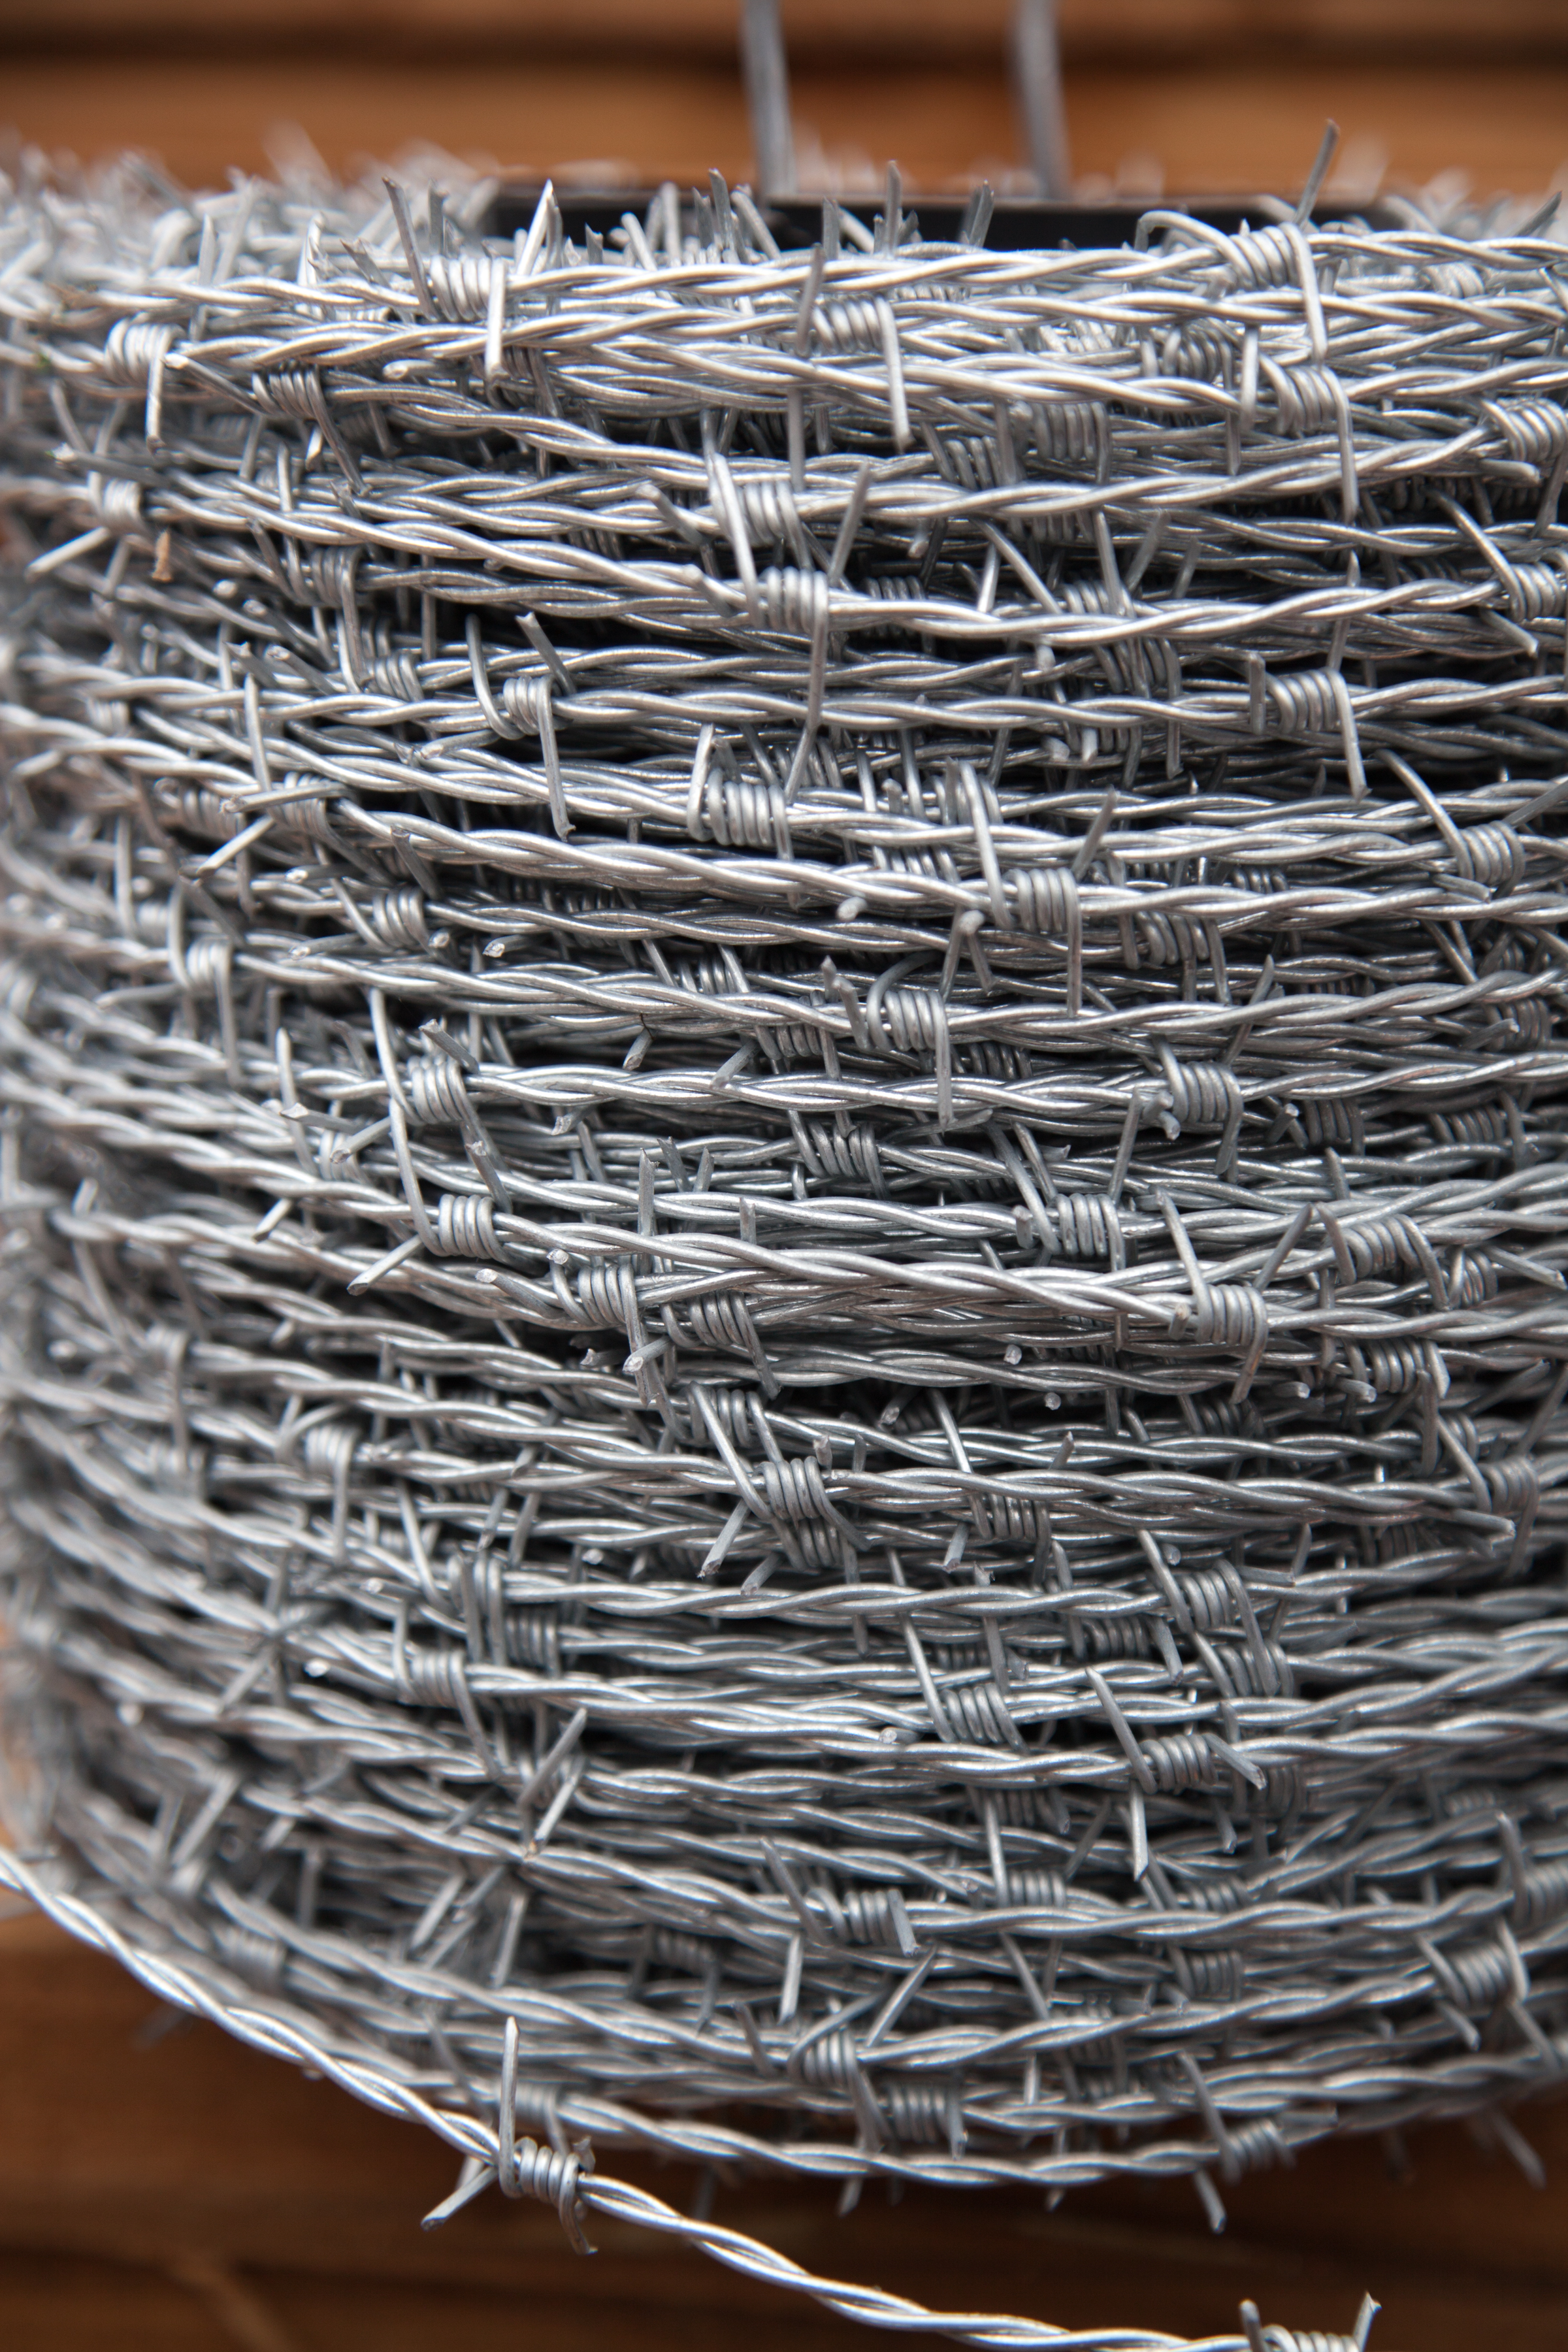 A roll of barbed wire. The provides security and can be used on the top of fencing and walls.